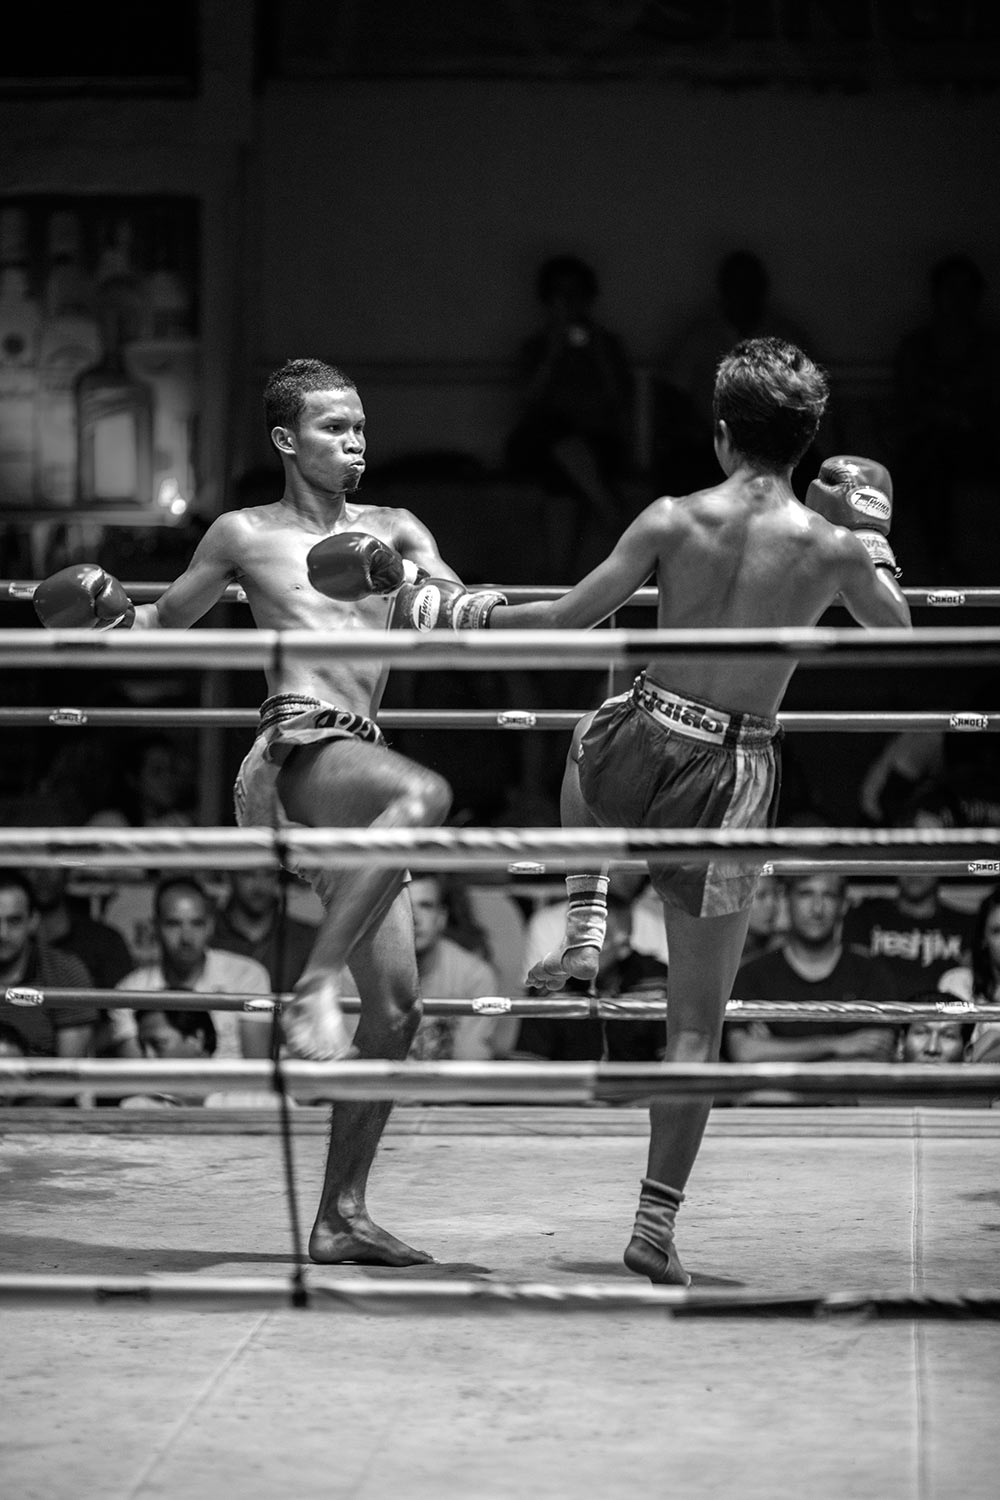 Muay Thai fighters in the rink